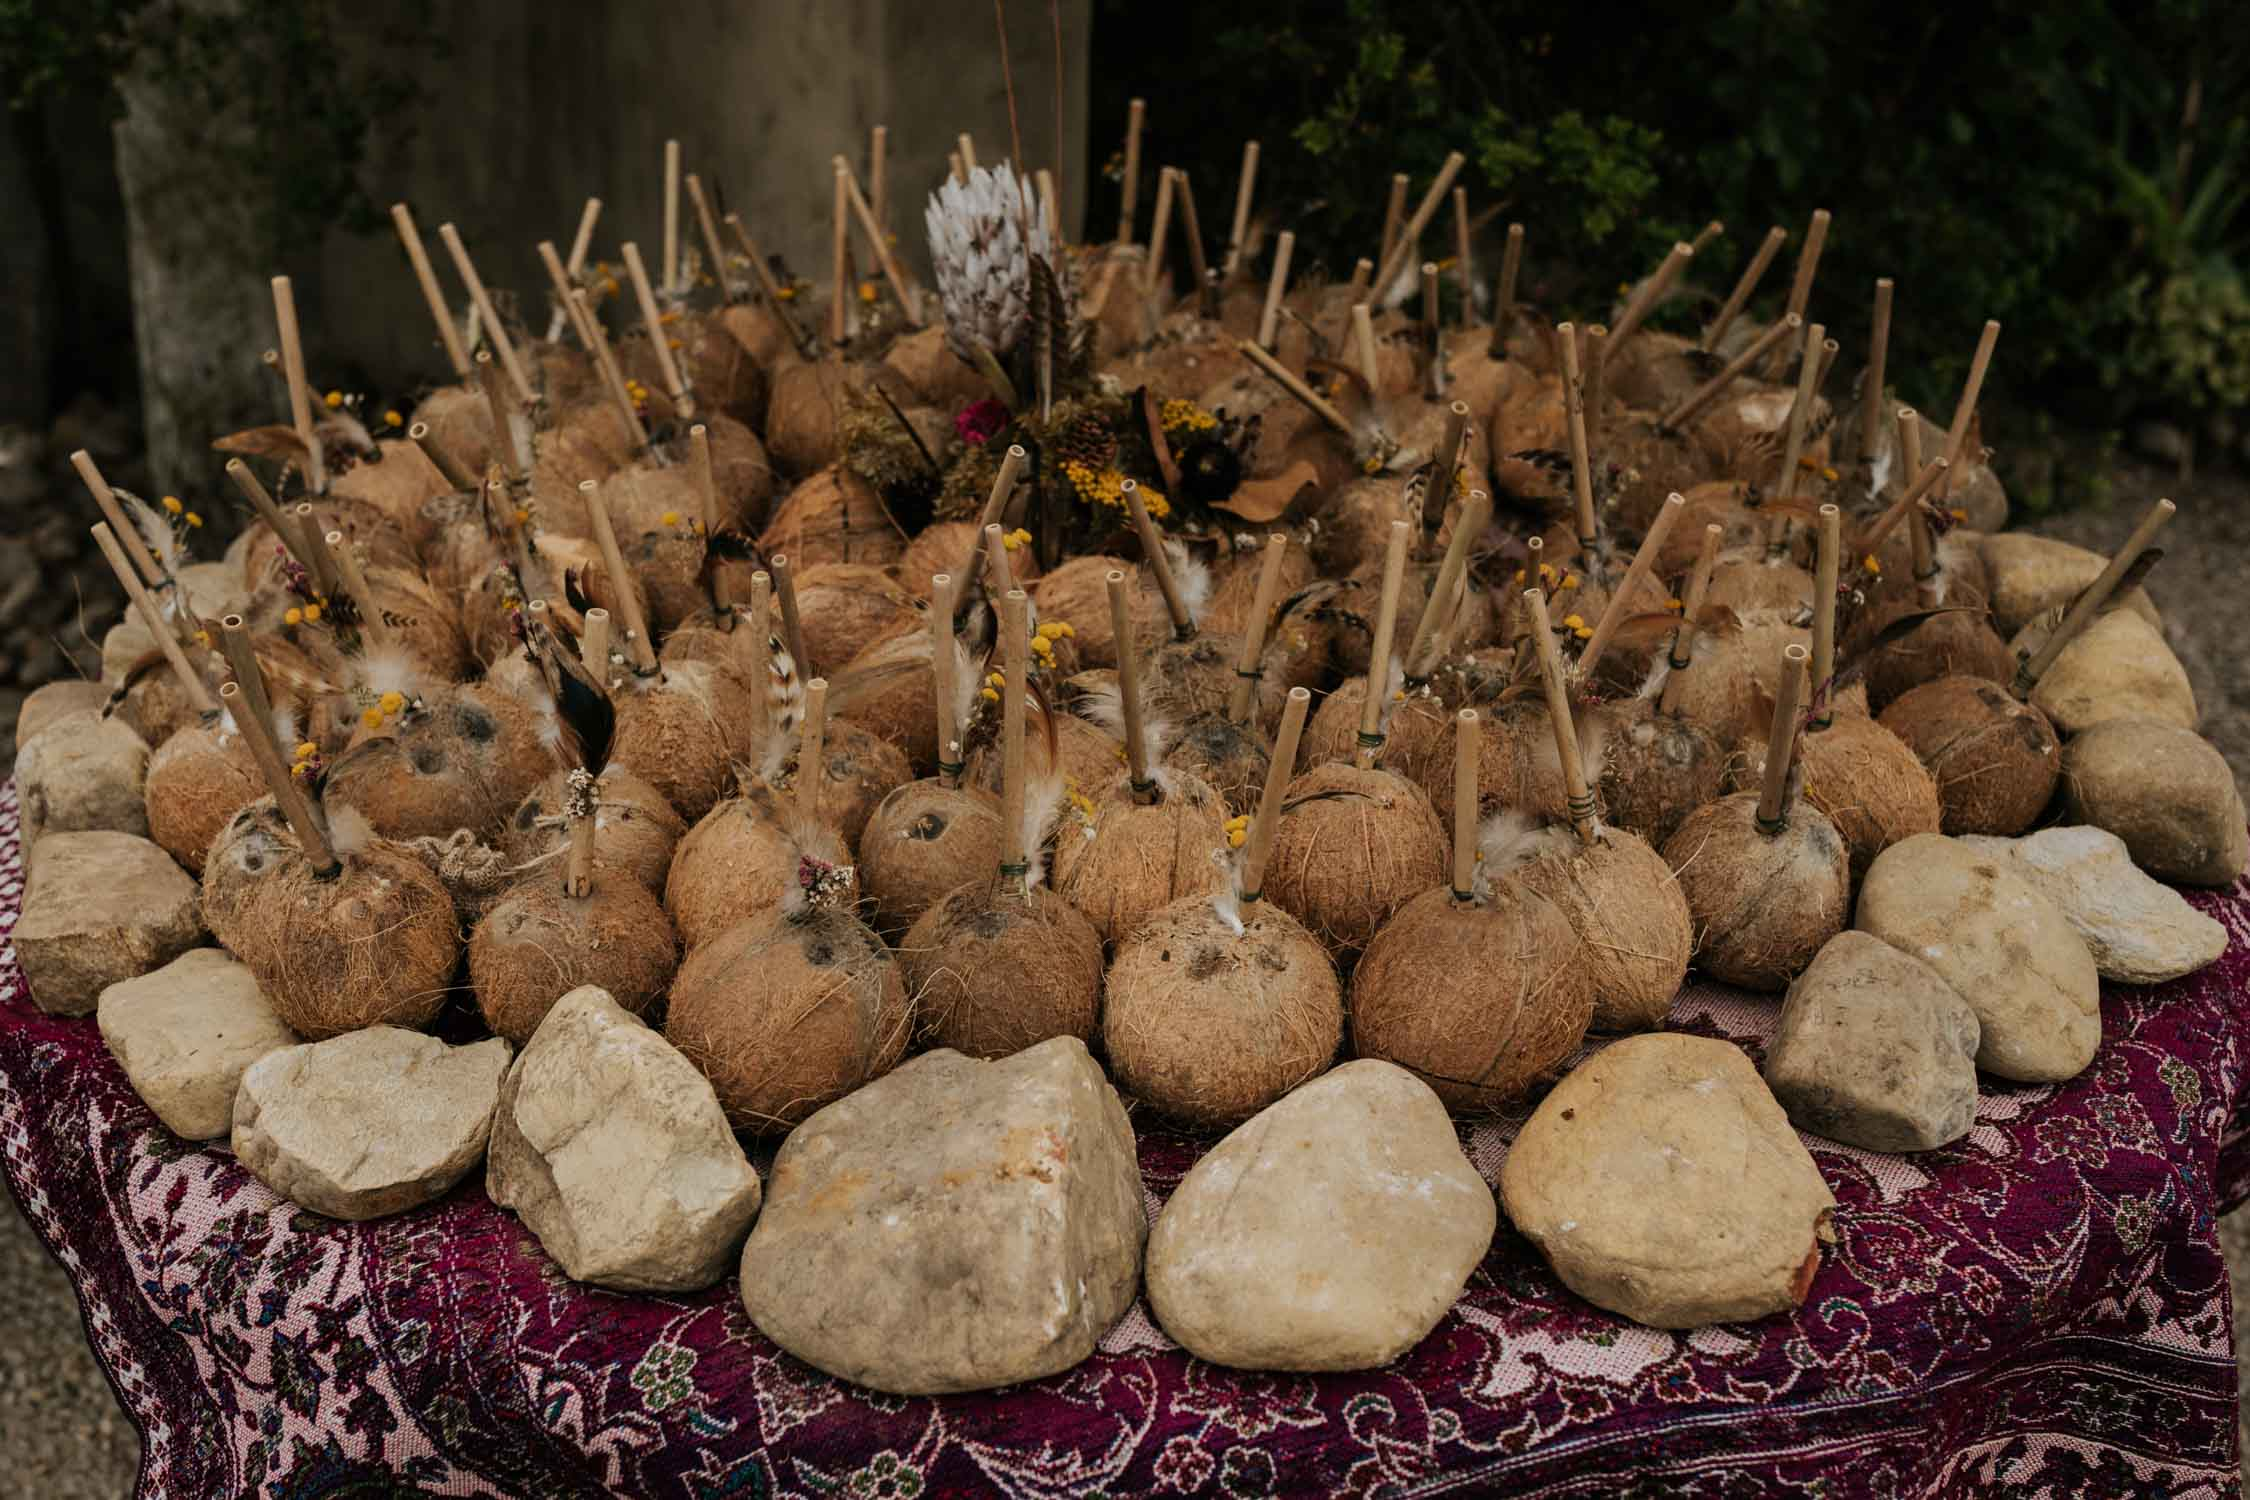 Real coconuts with wooden straws for cocktail hour refreshments